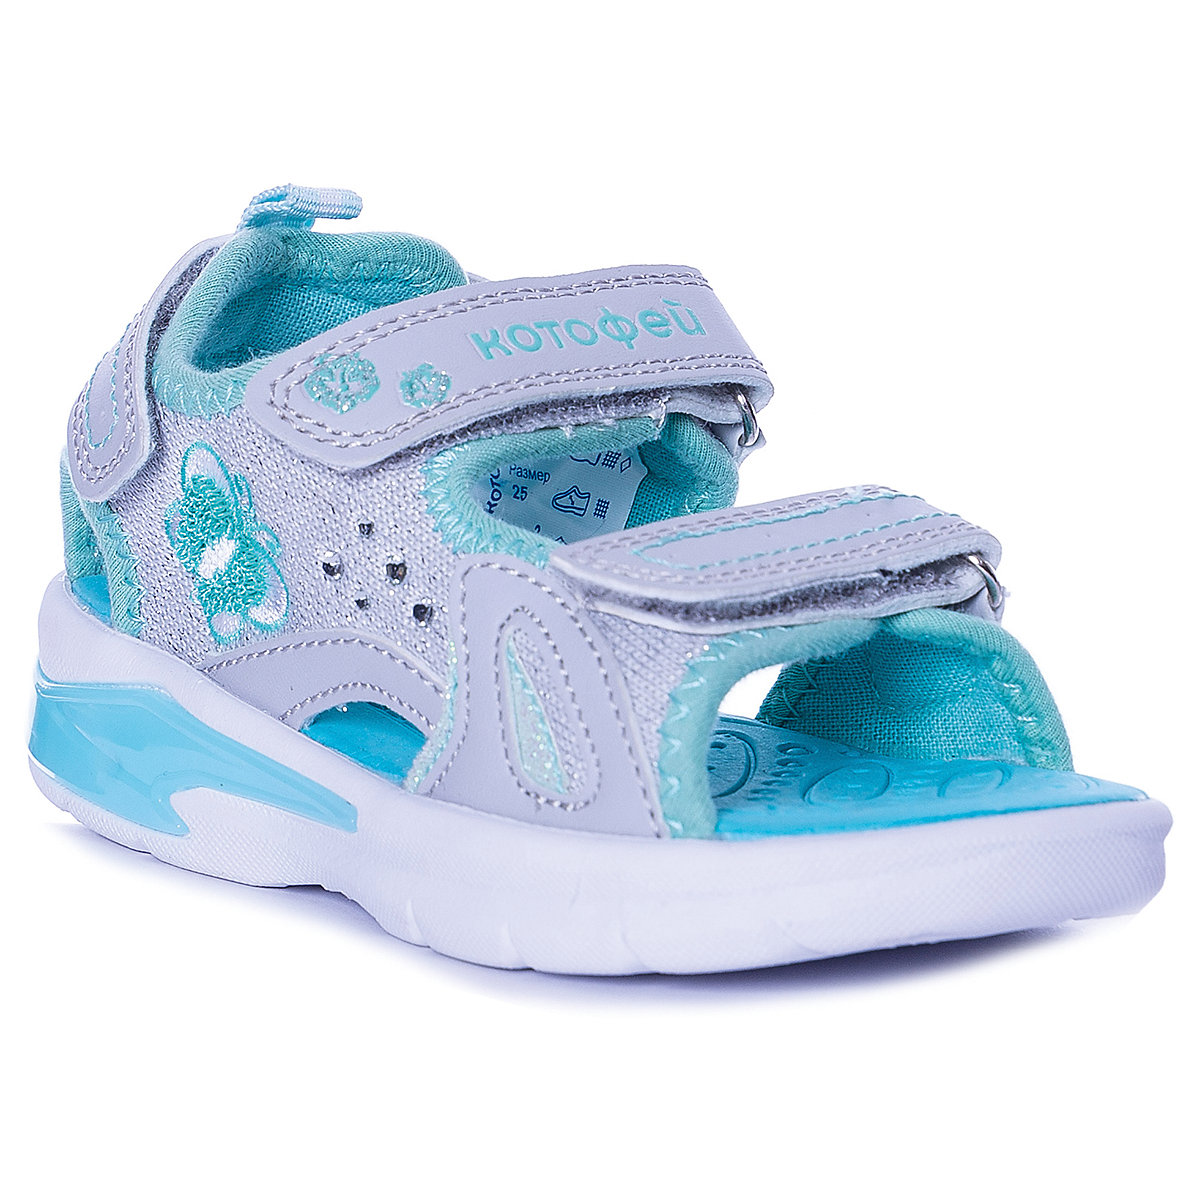 KOTOFEY Sandals 11319841 children's shoes comfortable and light girls and boys sandals adidas af3921 sports and entertainment for boys